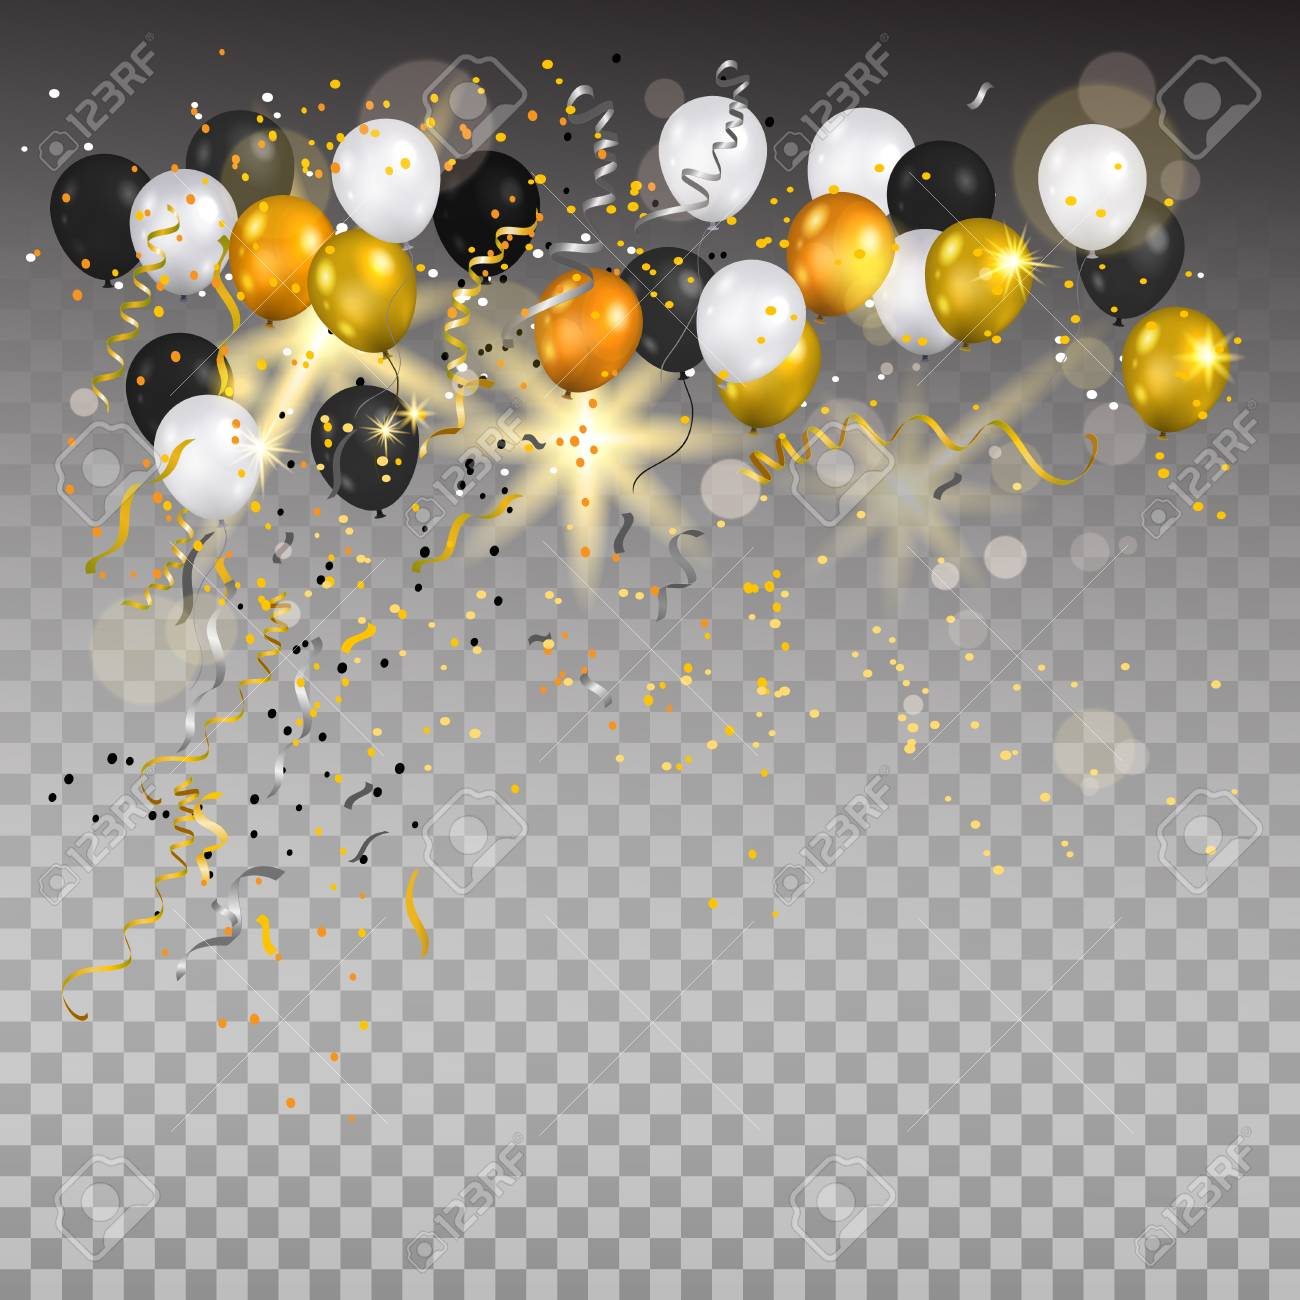 Color holiday white, gold and black balloons. Holiday balloons and confetti on transparent background. Anniversary, celebration or party decoration. - 85315044